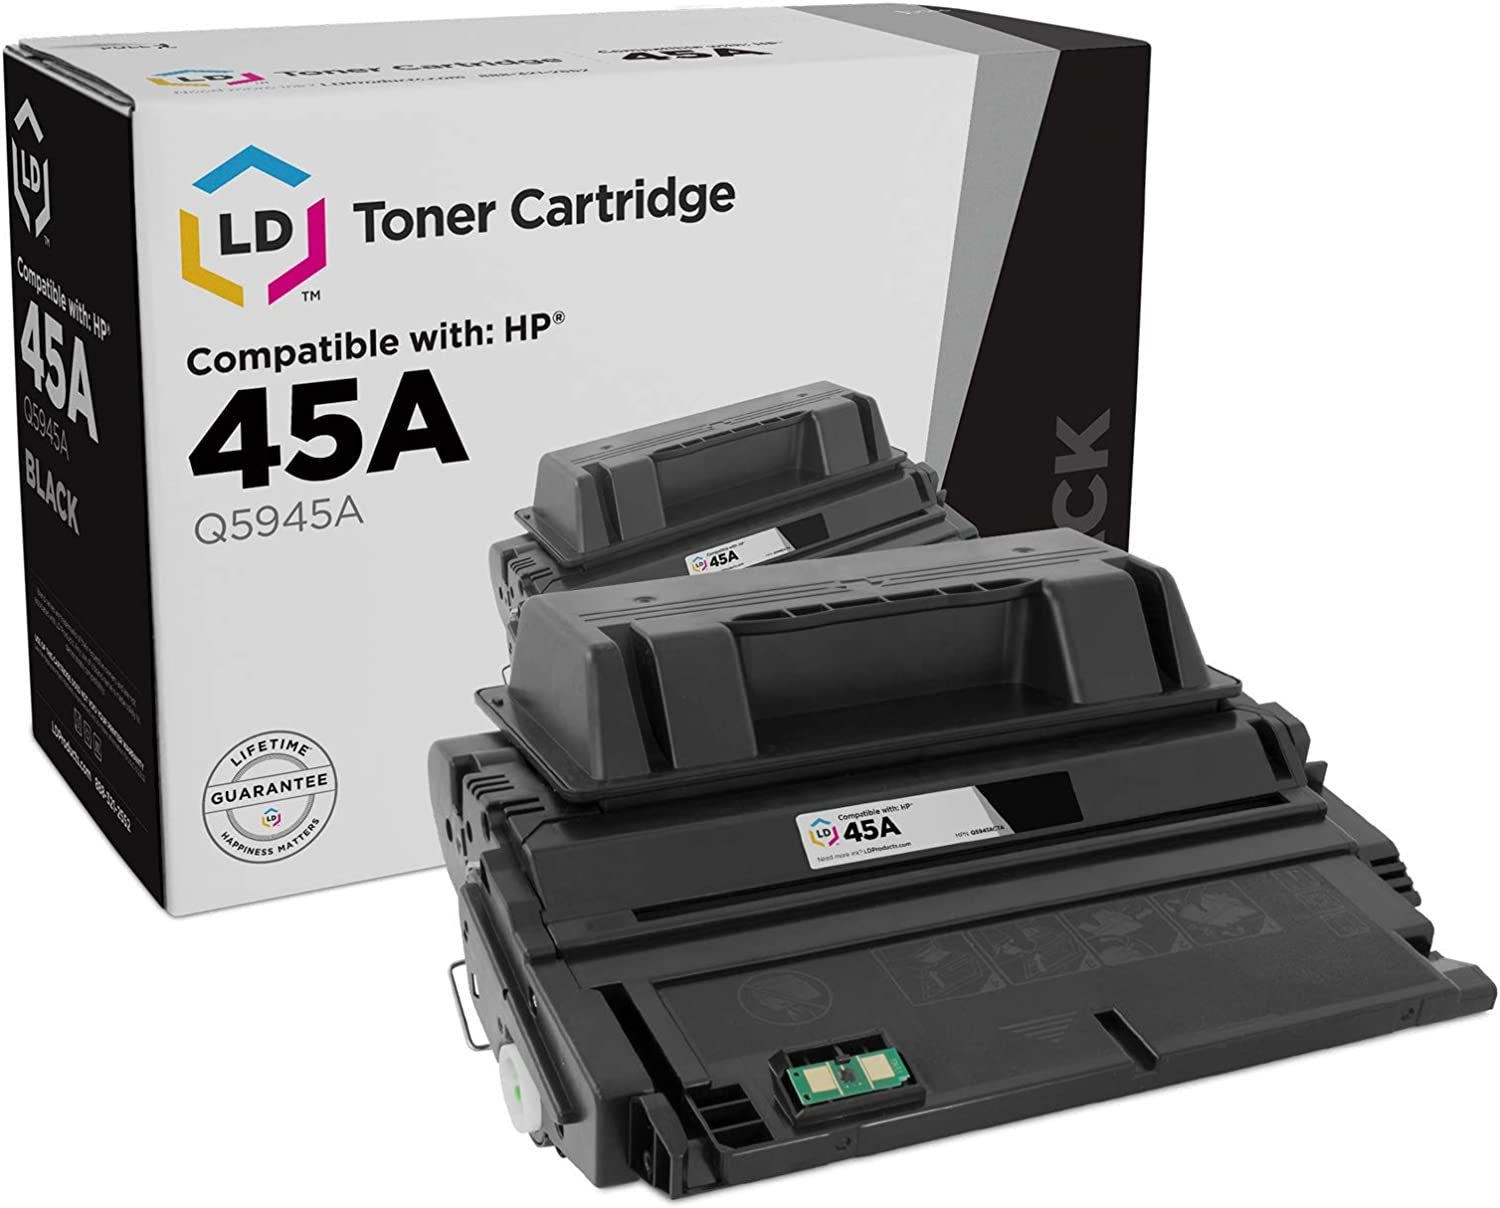 LD Compatible Toner Cartridge Replacement for HP 45A Q5945A (Black)